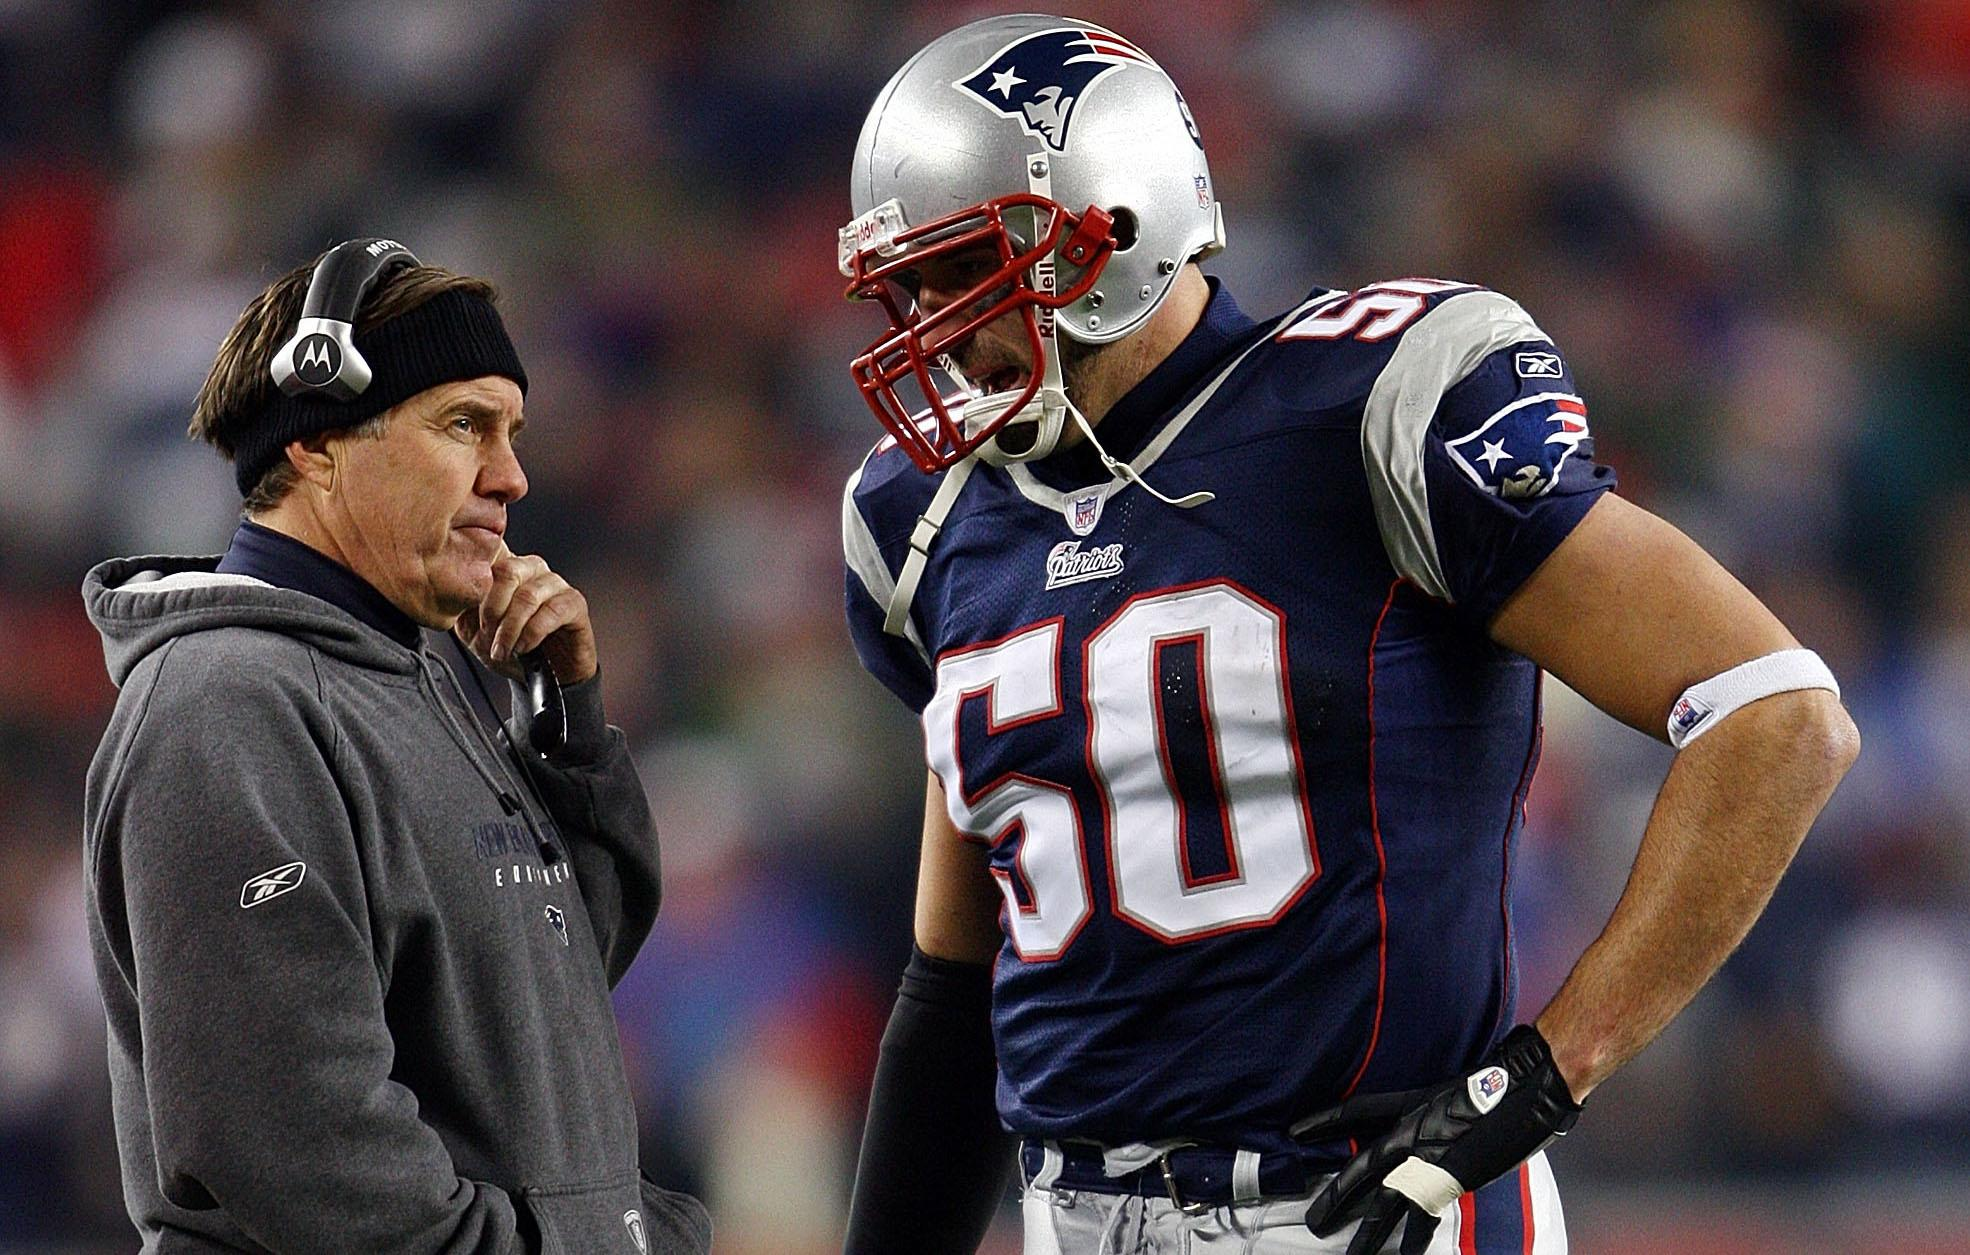 b49b81b03d4 Bill Belichick faces Mike Vrabel for first time